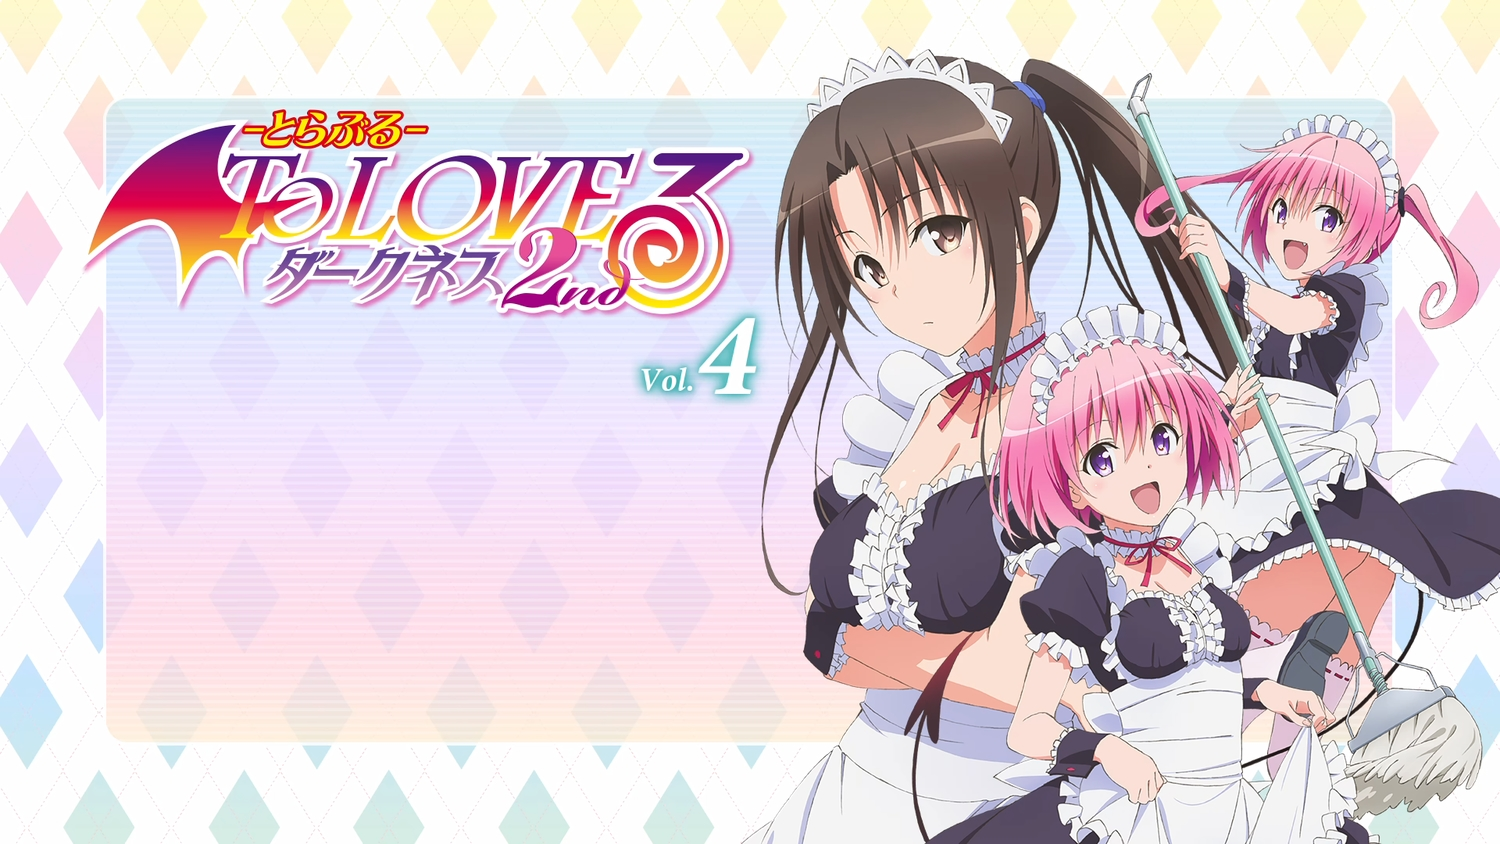 breast_hold breasts brown_eyes brown_hair dress fang headphones kujou_rin logo long_hair maid momo_velia_deviluke nana_asta_deviluke pink_hair ponytail purple_eyes ribbons short_hair skirt_lift tagme_(artist) thighhighs to_love_ru to_love_ru_darkness twintails